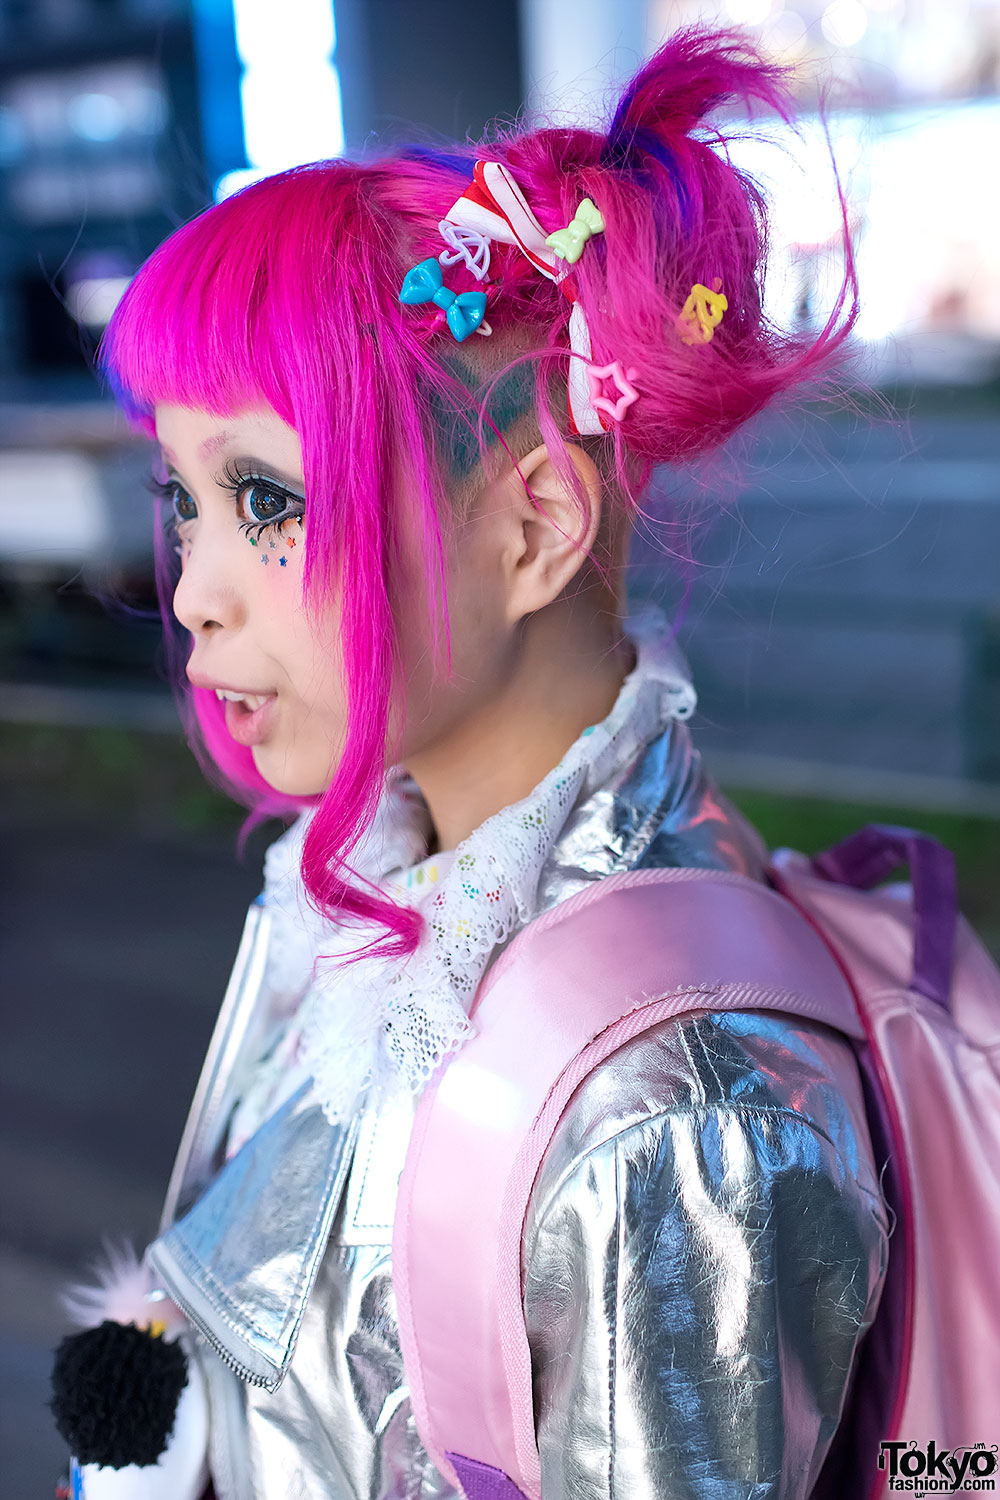 Haruka Kurebayashi S Super Kawaii Pink Hair Amp Fashion In